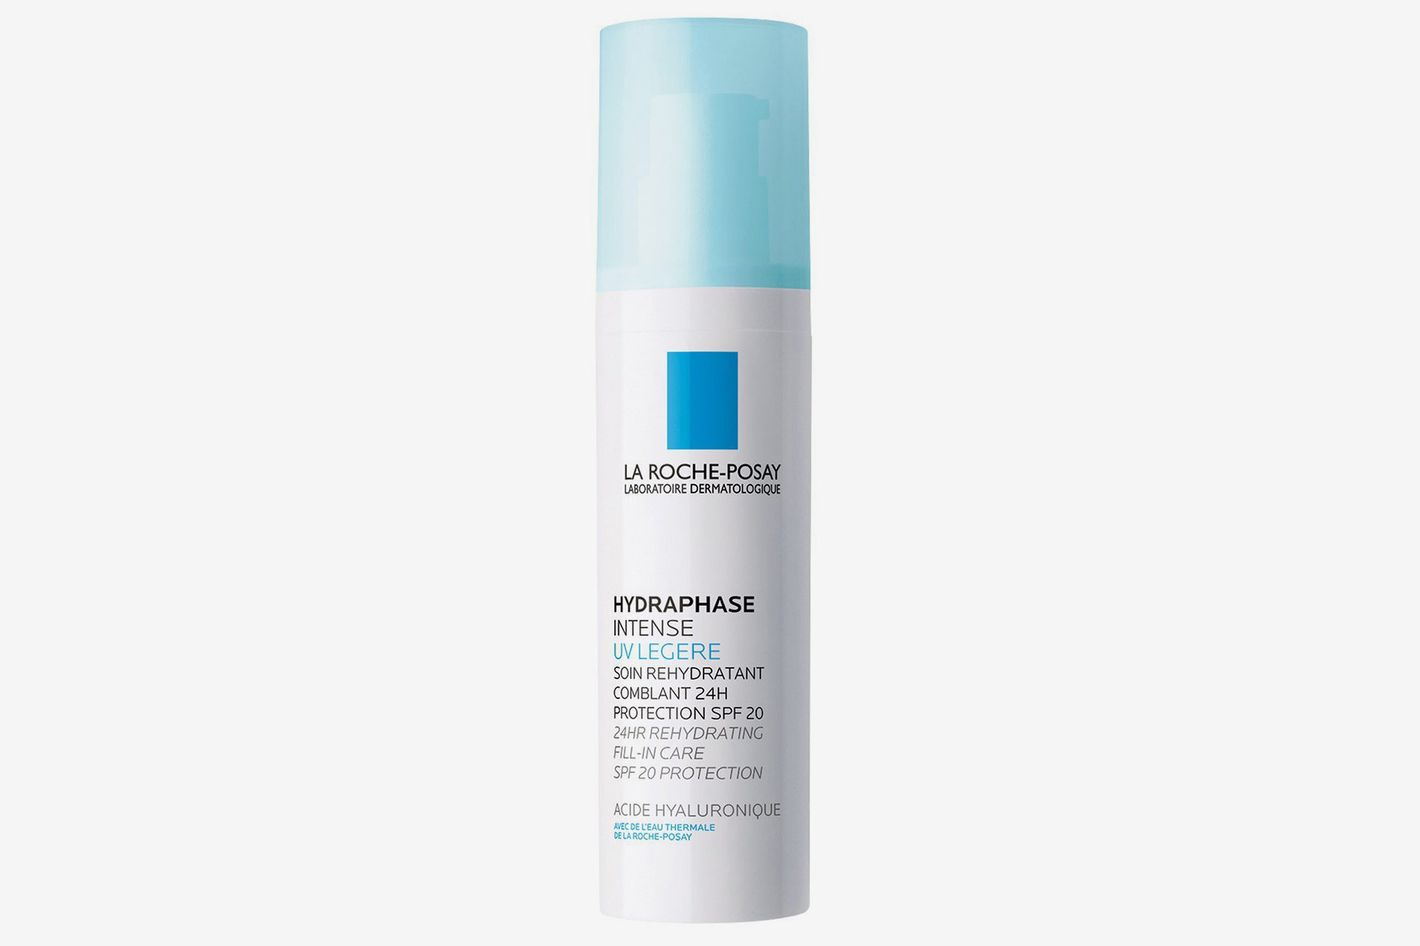 La Roche-Posay Hydraphase Intense 24-Hour Face Moisturizer With Hyaluronic Acid SPF 20